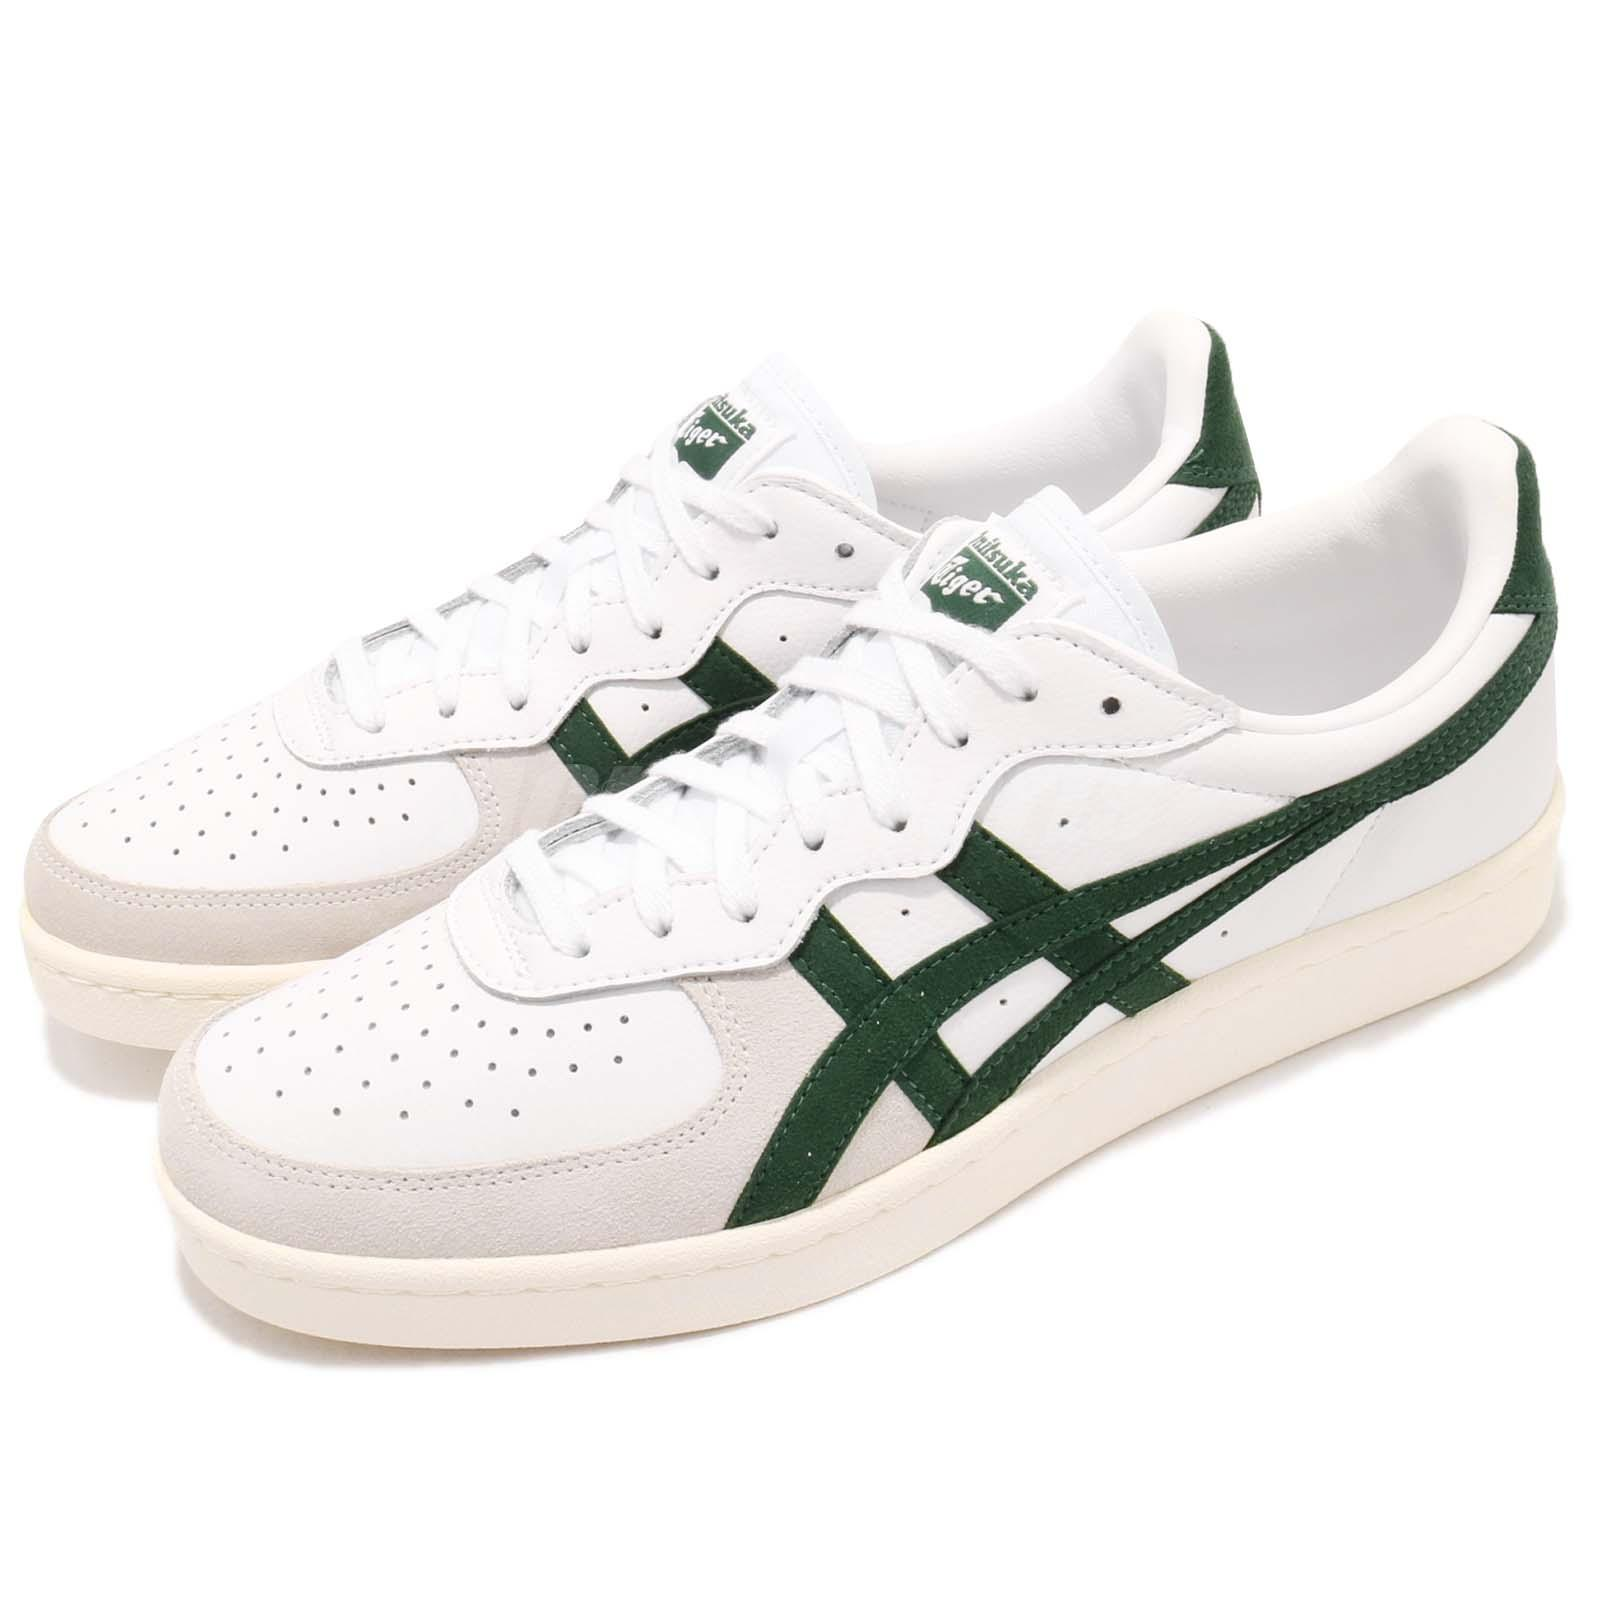 idioma laberinto Estricto  Asics Onitsuka Tiger GSM White Hunter Green Men Casual Shoes Sneakers  D5K2-Y101 | eBay